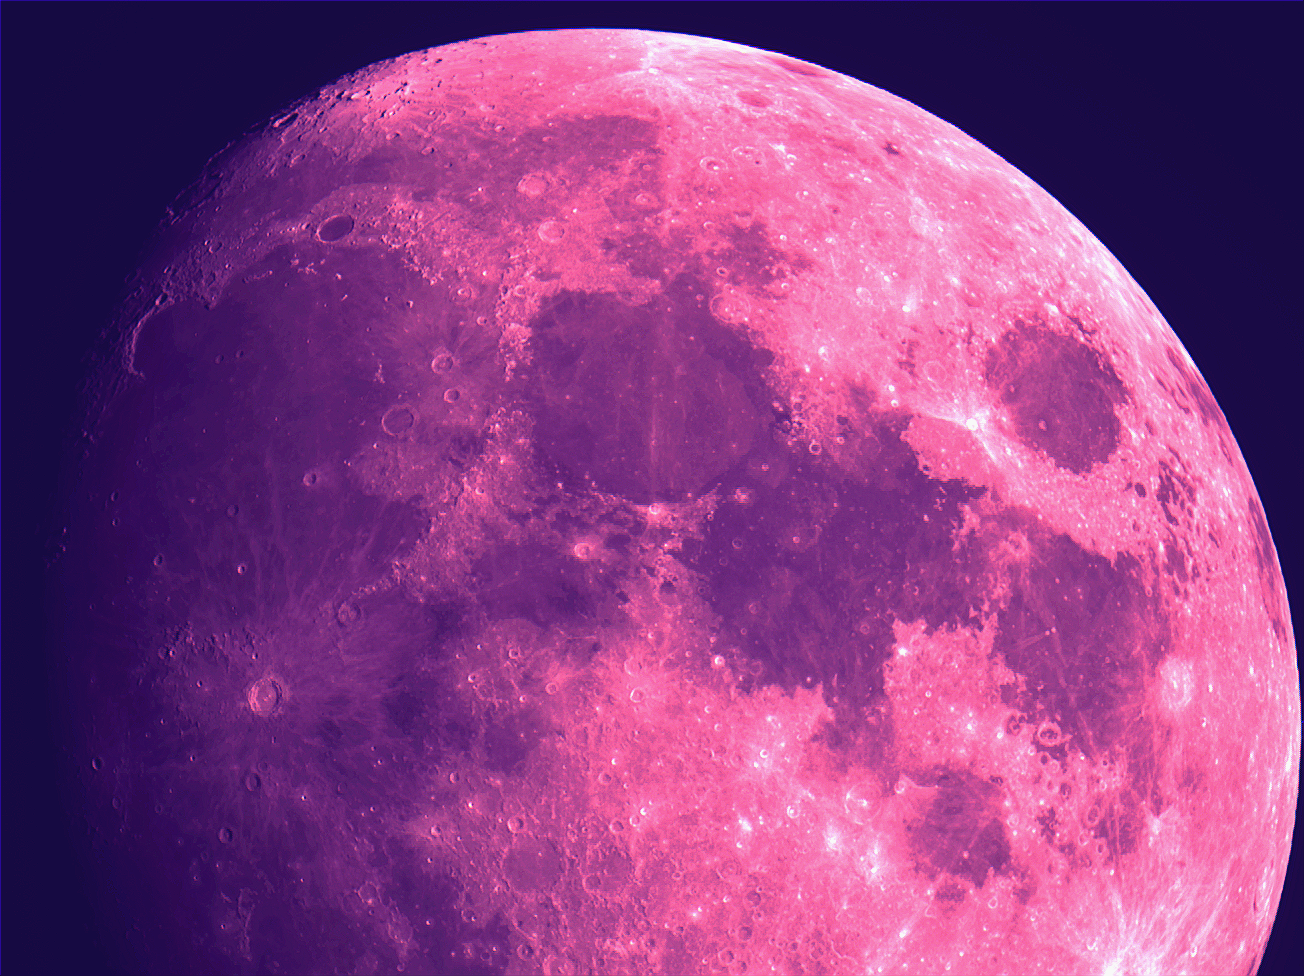 Moon_221023_lapl4_ap993 coloraaaaaaa.png